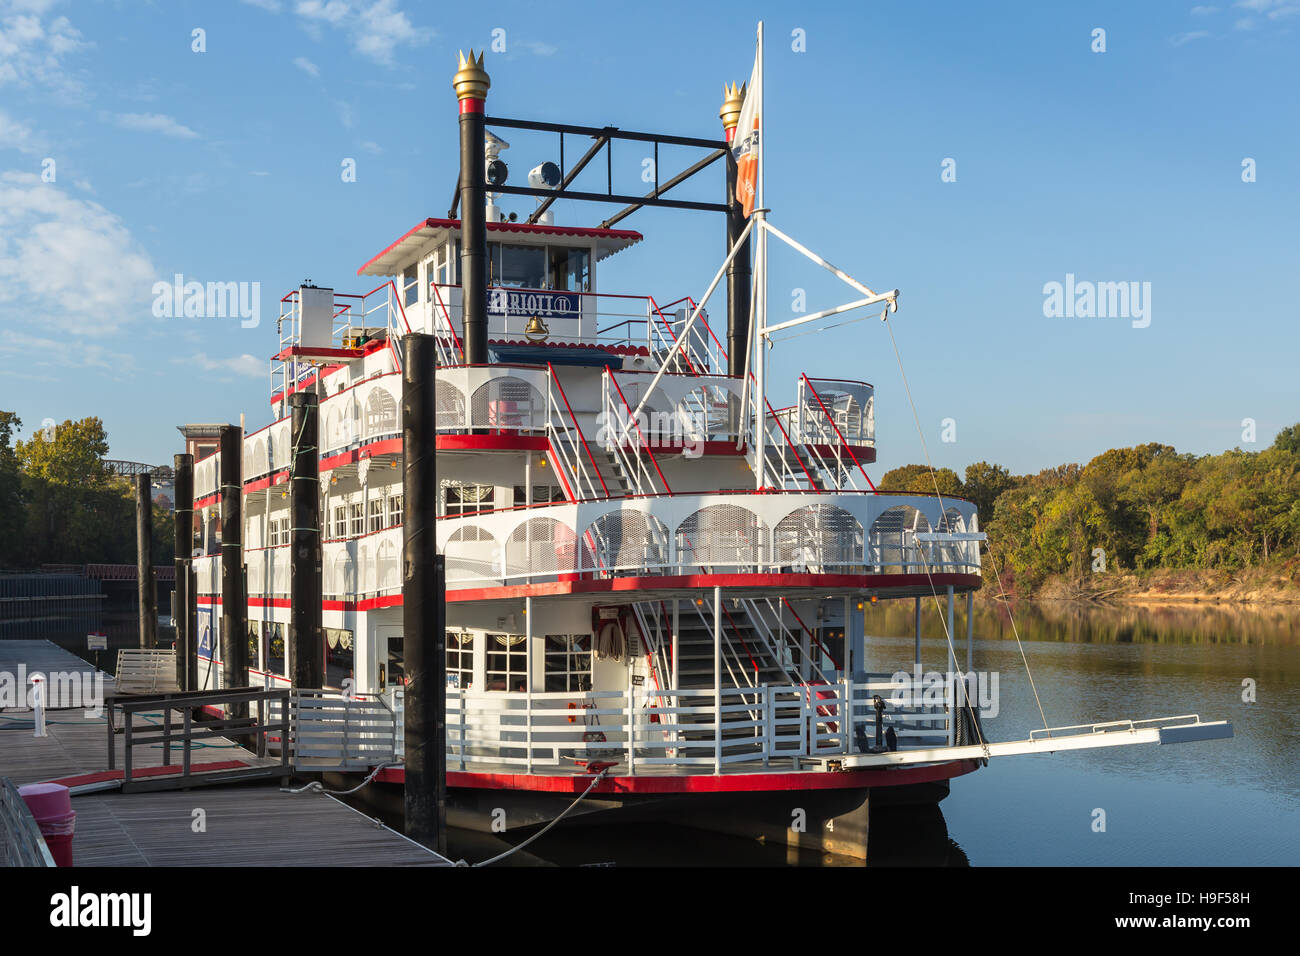 The Harriott II riverboat anchored in Riverfront Park in Montgomery, Alabama. - Stock Image